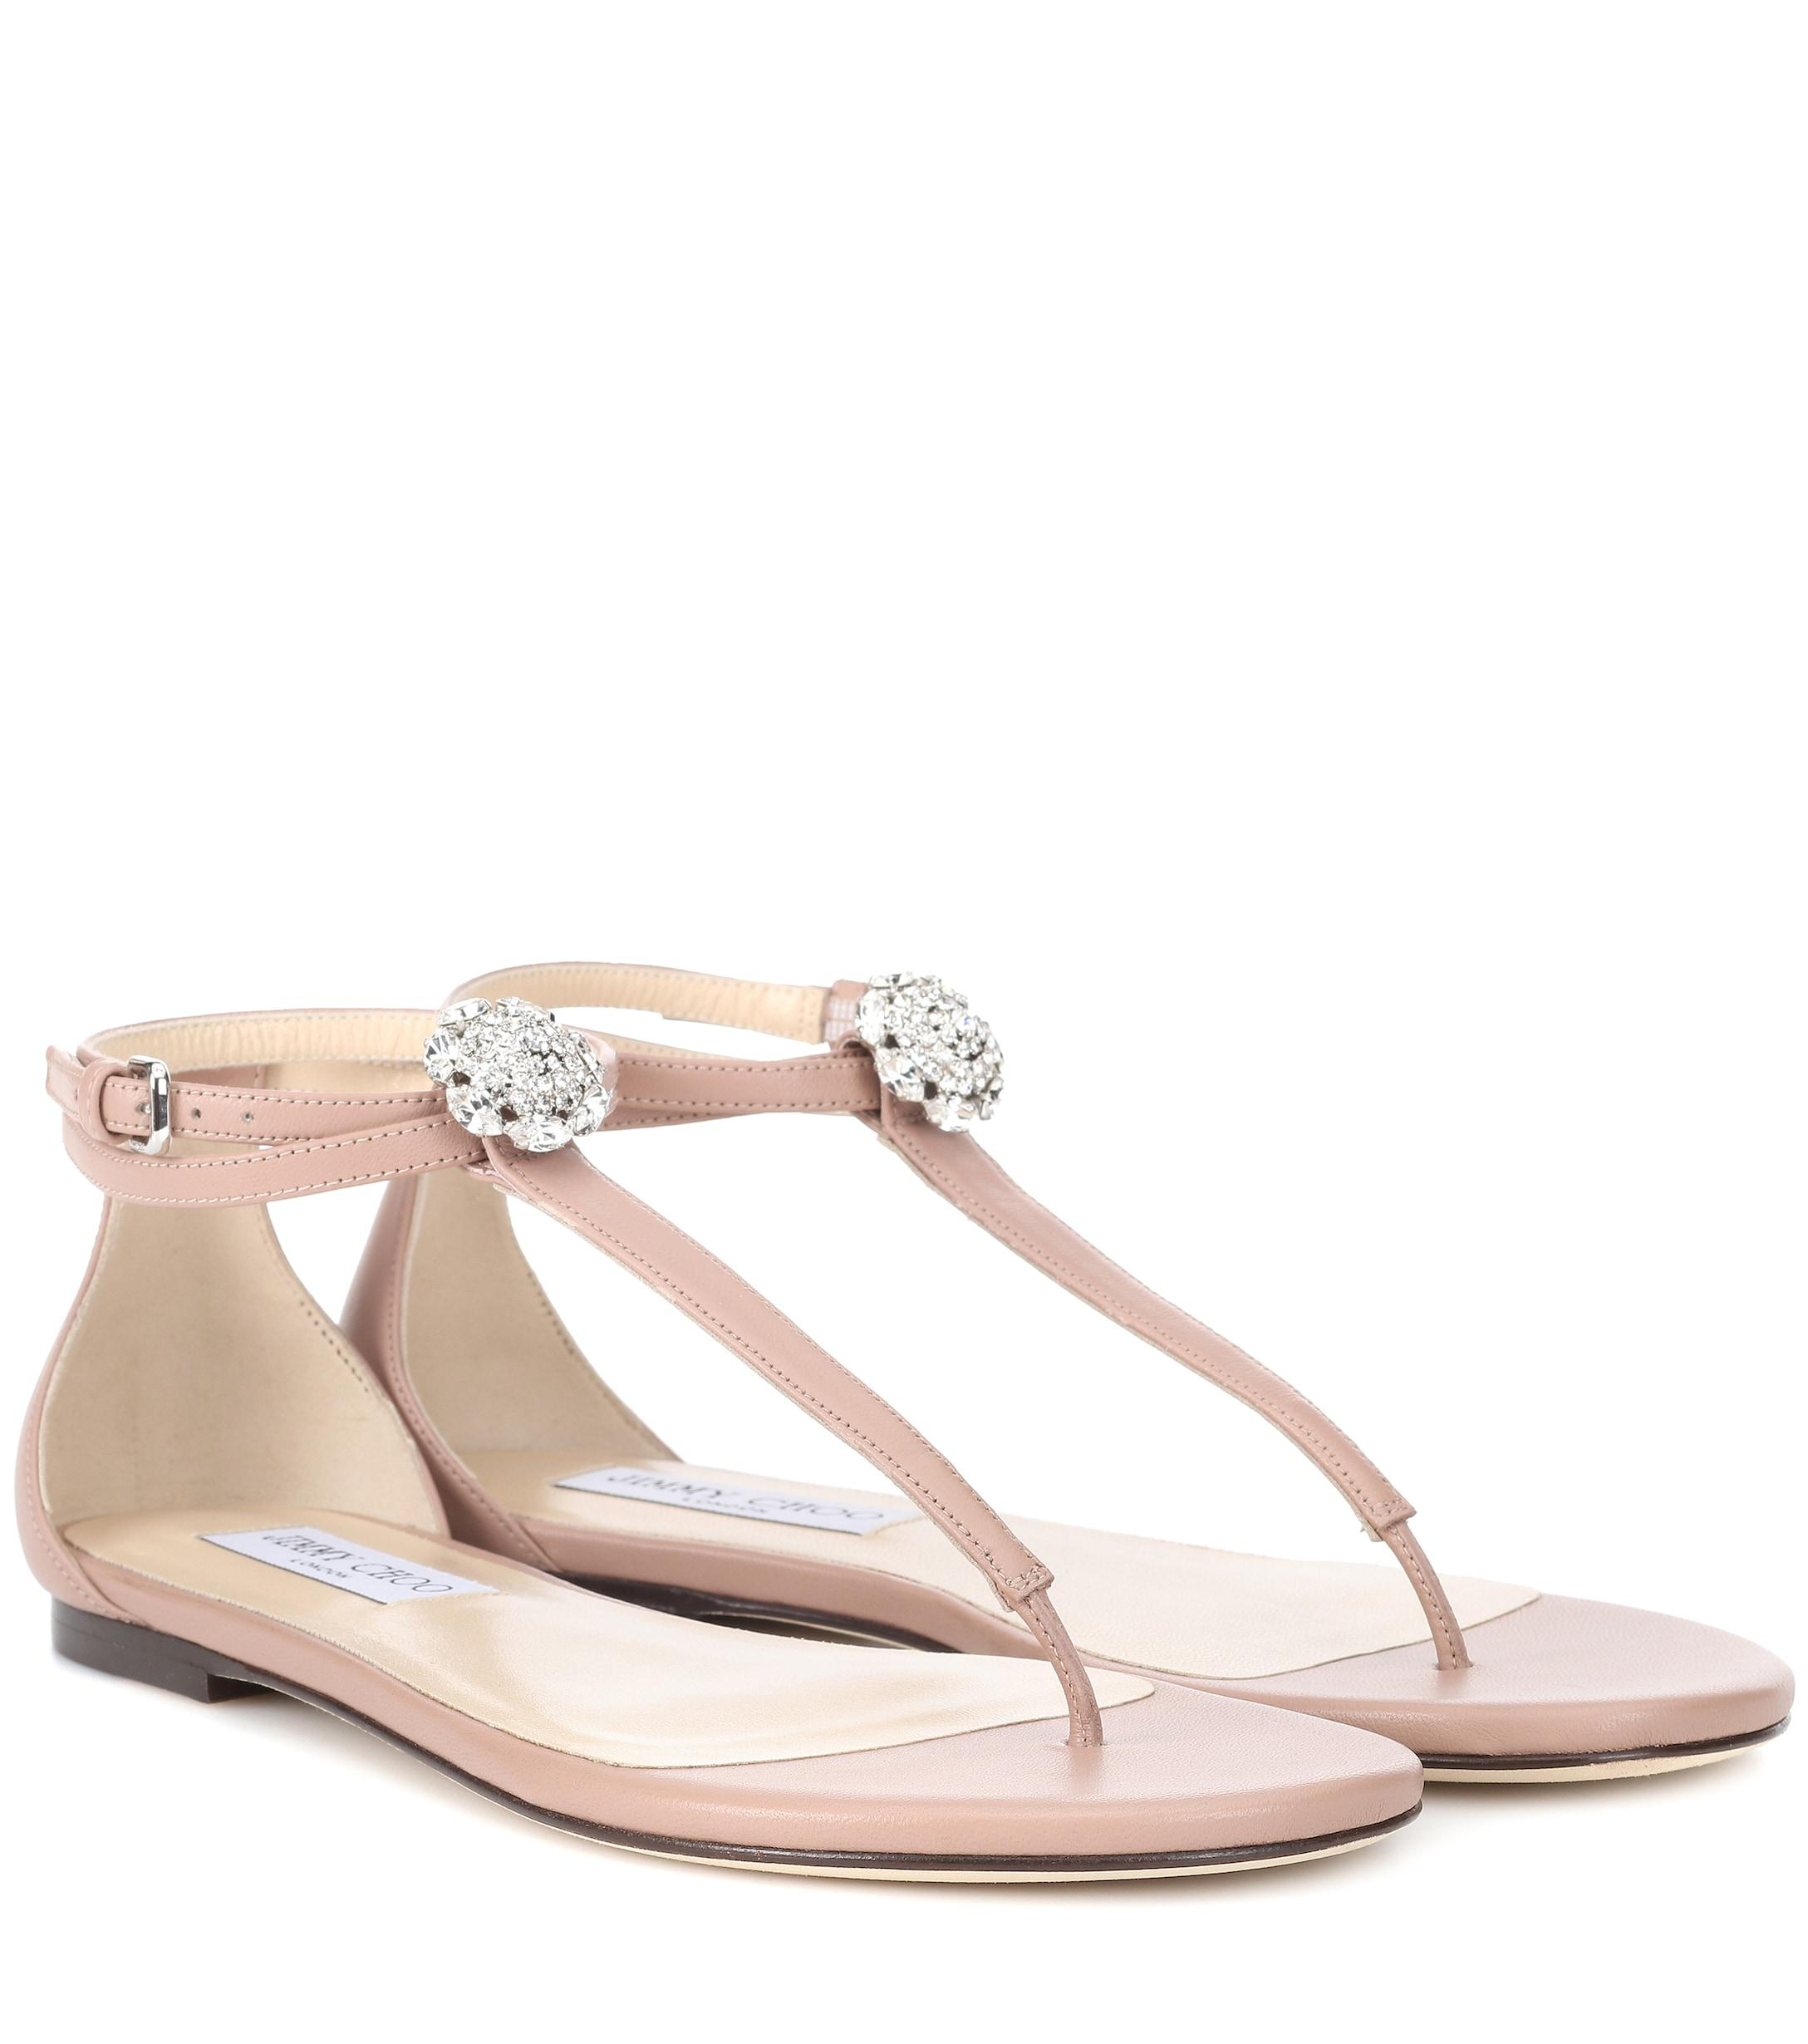 64d1f8a43c685 Lyst - Jimmy Choo Afia Crystal-embellished Leather Sandals in Pink